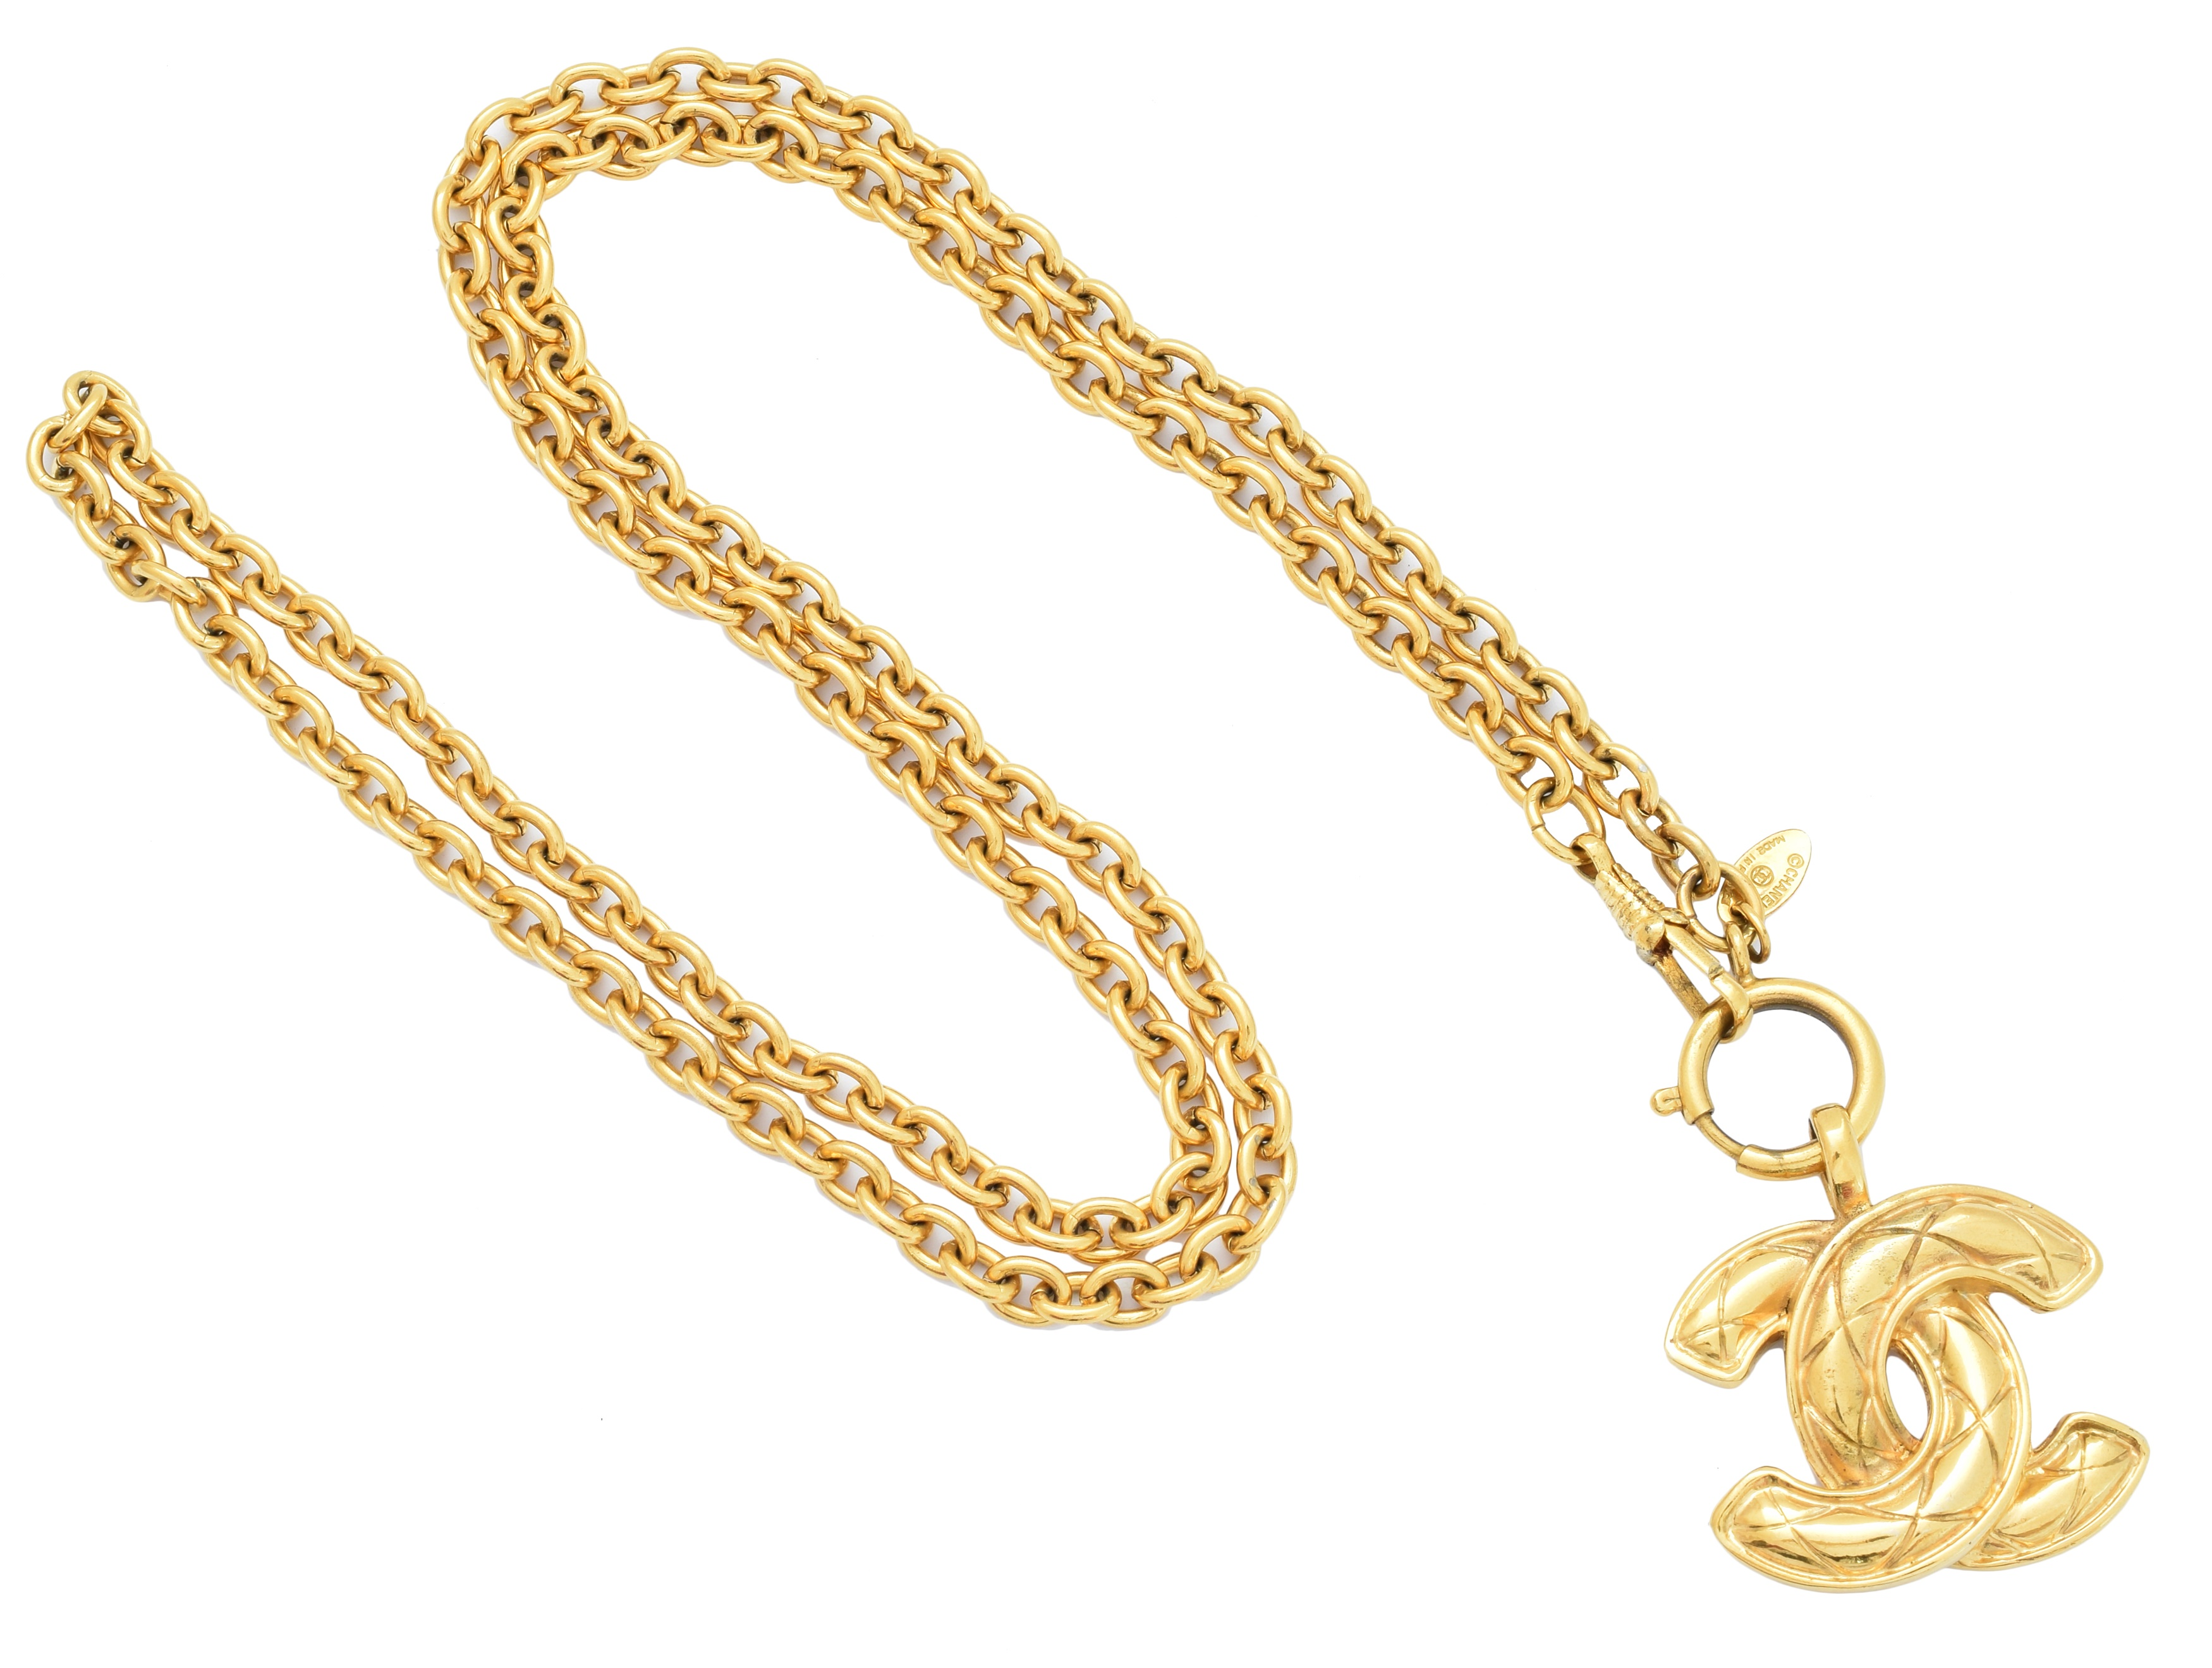 A Chanel pendant necklace, the gold-tone maker's quilted monogram suspended from a trace link chain, signed Chanel.